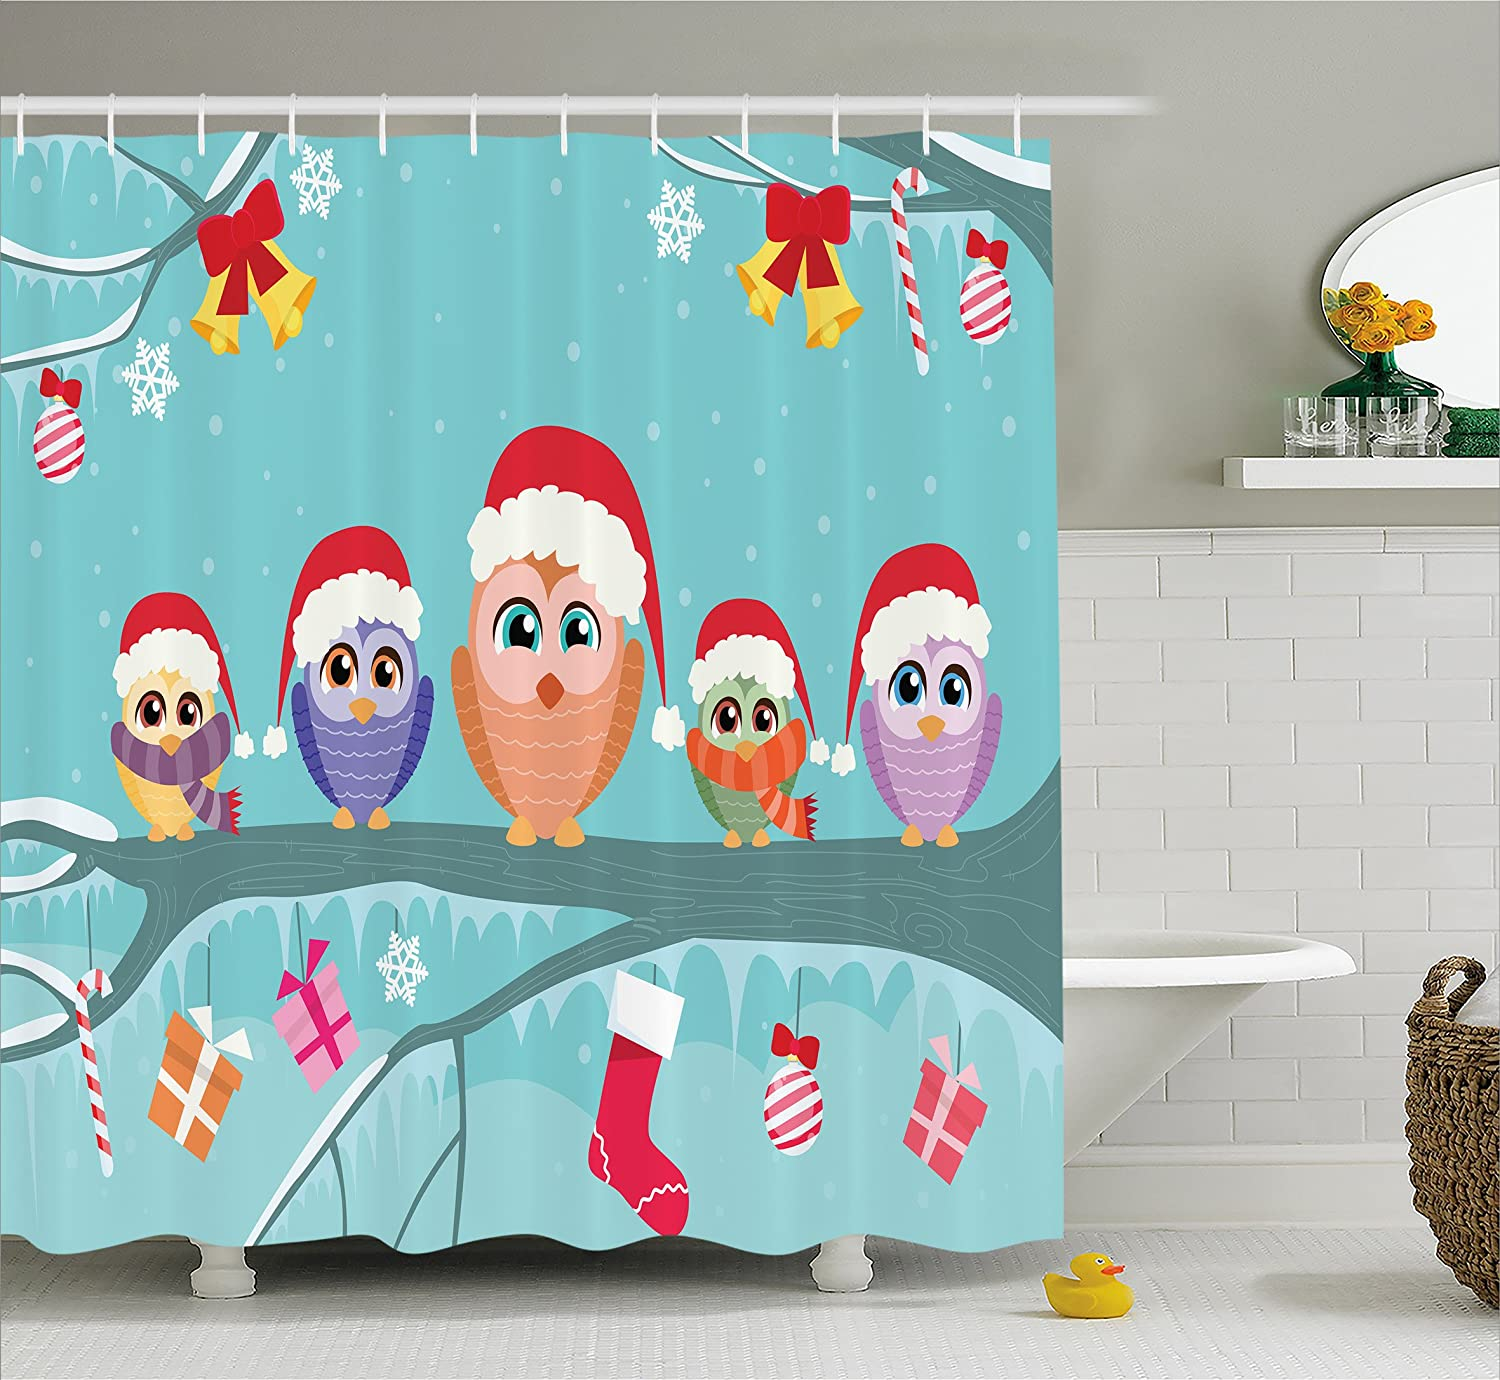 Amazon.com: Ambesonne Christmas Shower Curtain, Cute Owl Family ...